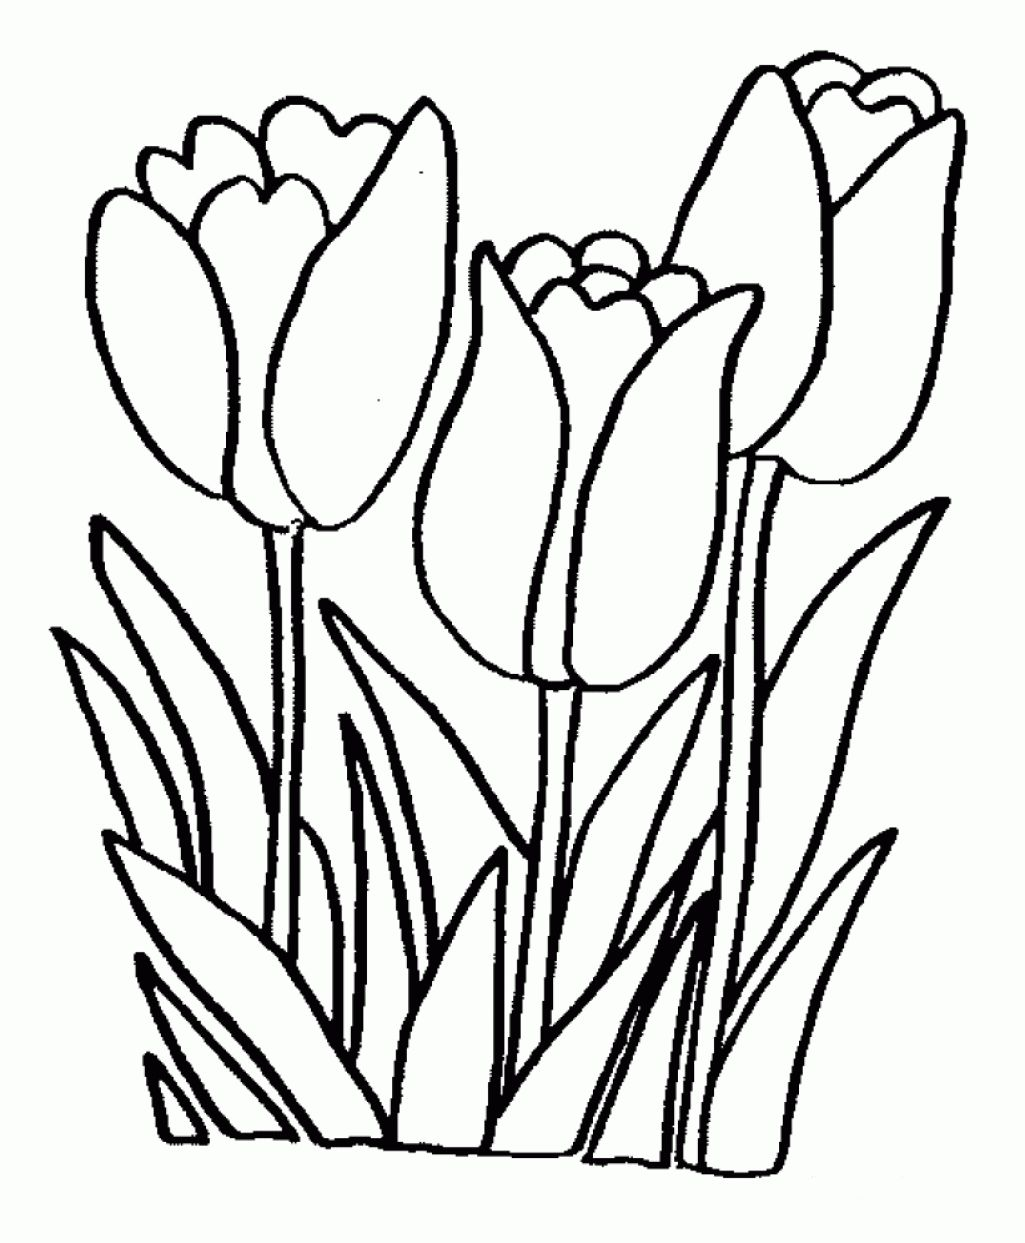 Coloring Pages Flower Free Printable Coloring Pages Easy Printable ...